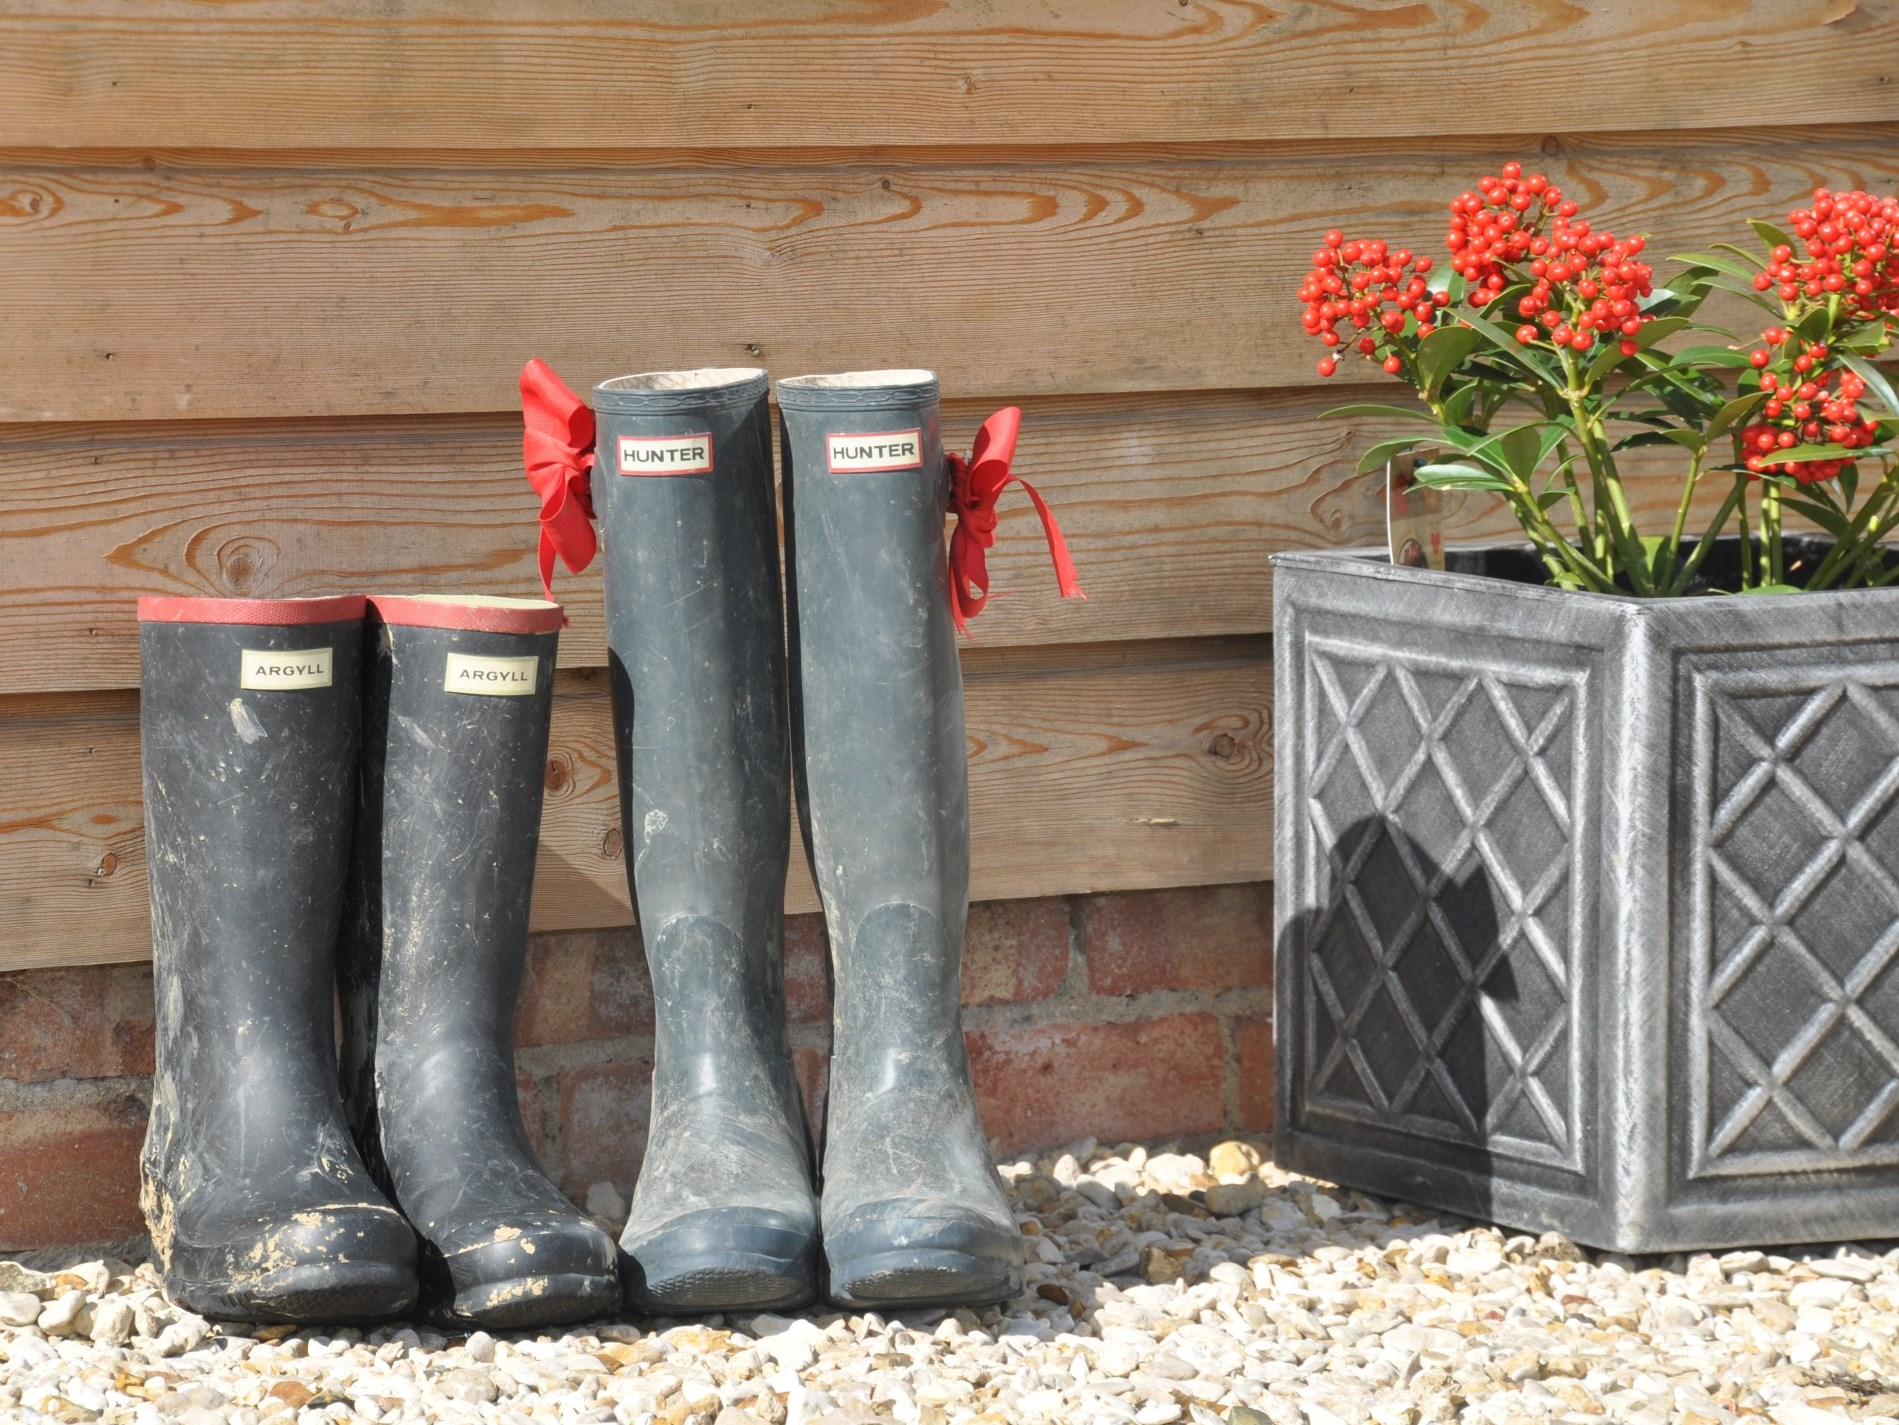 Don't forget your wellies, there's walking from your front door